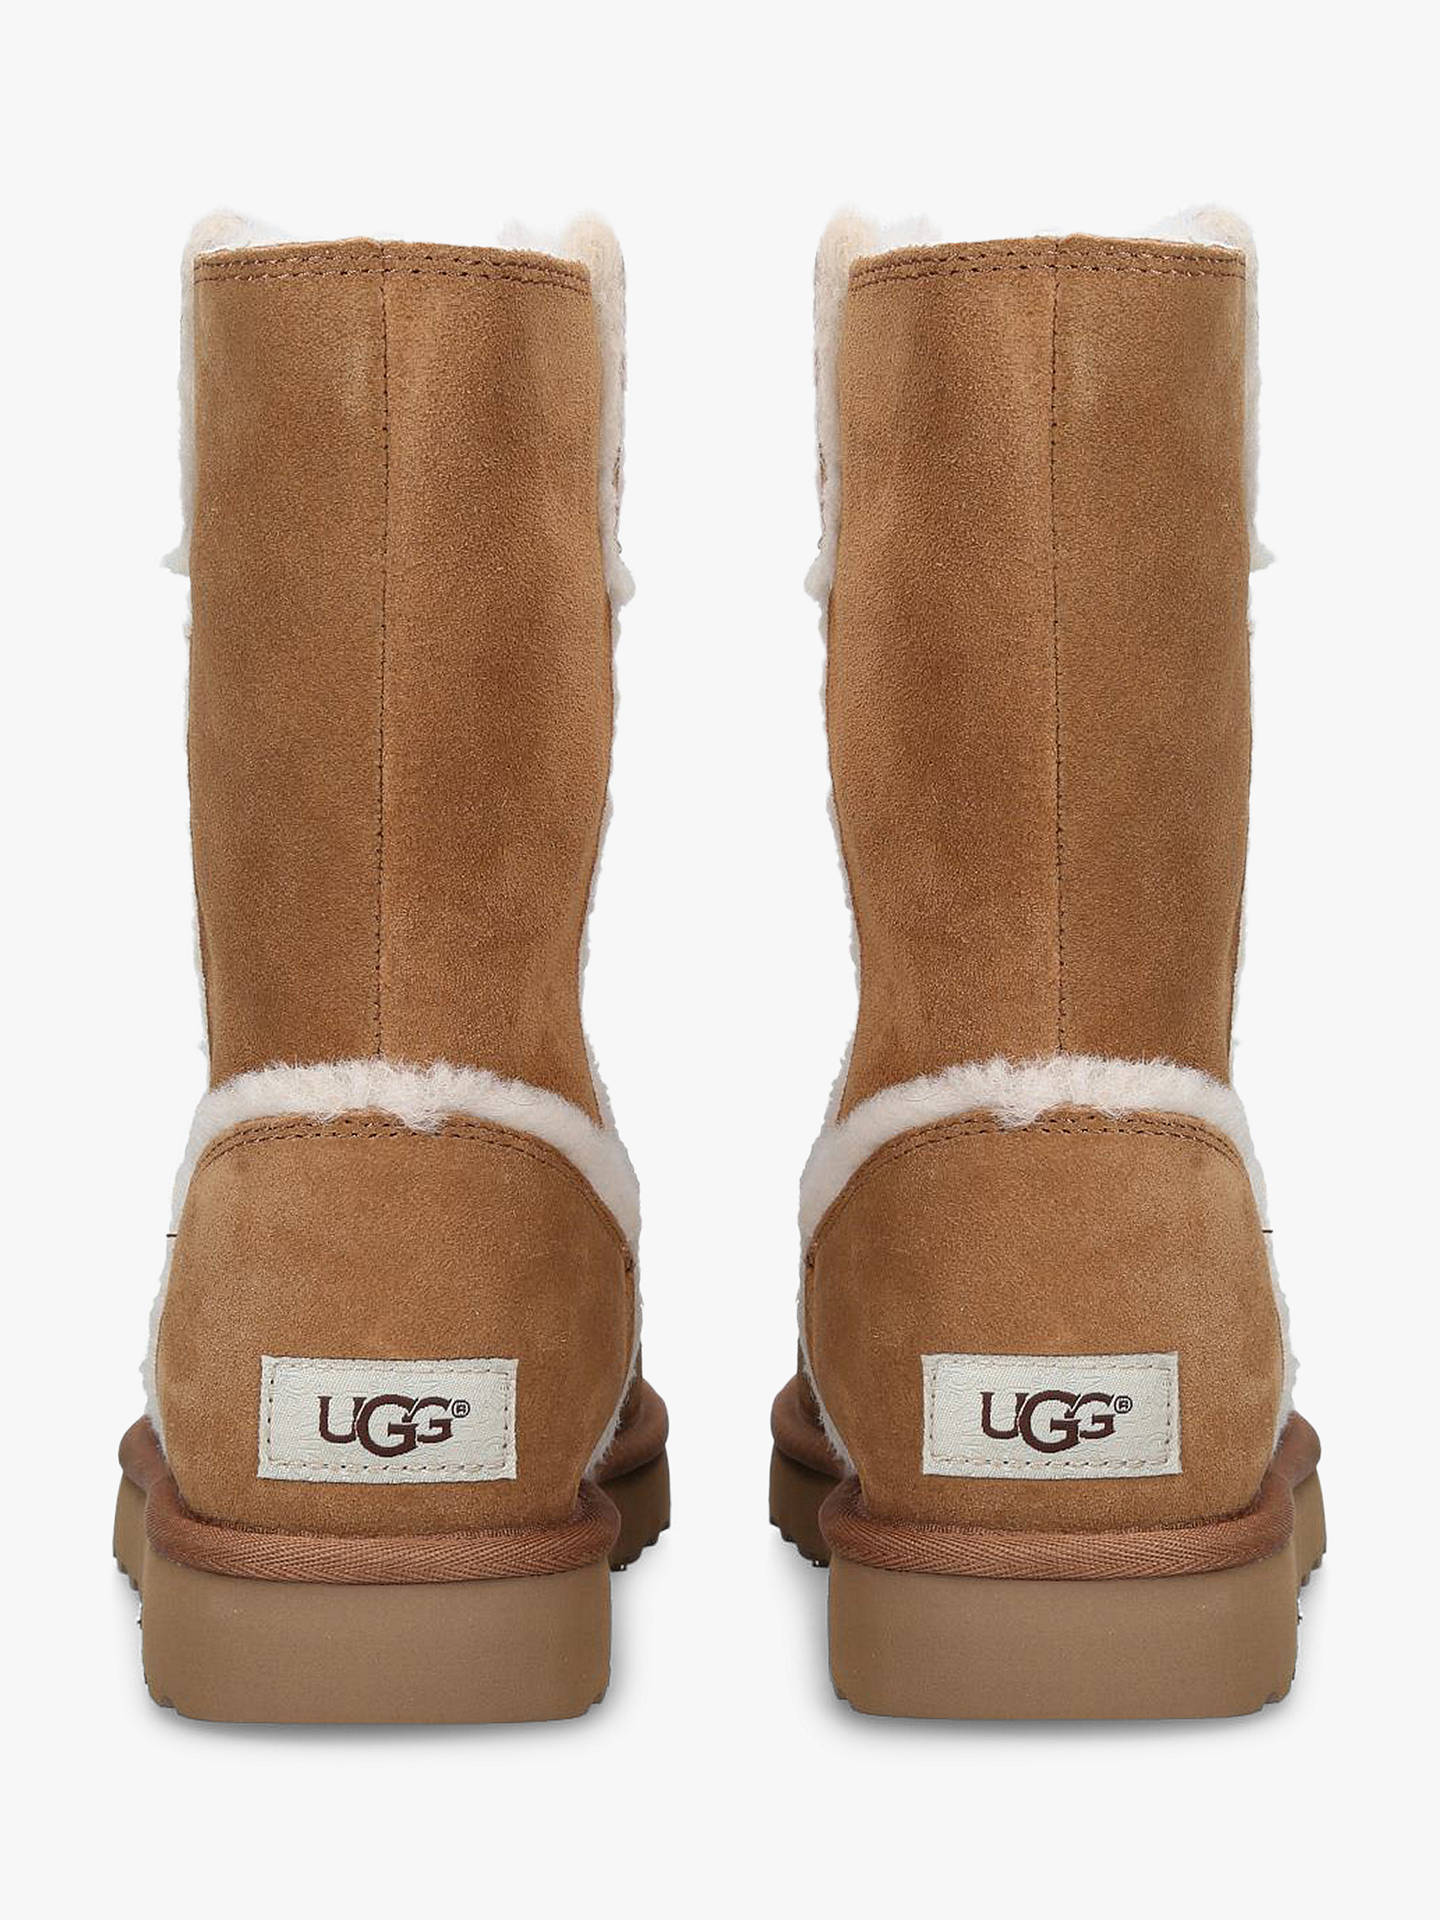 5cbade8e078 UGG Classic Short Spill Seam Boots at John Lewis & Partners